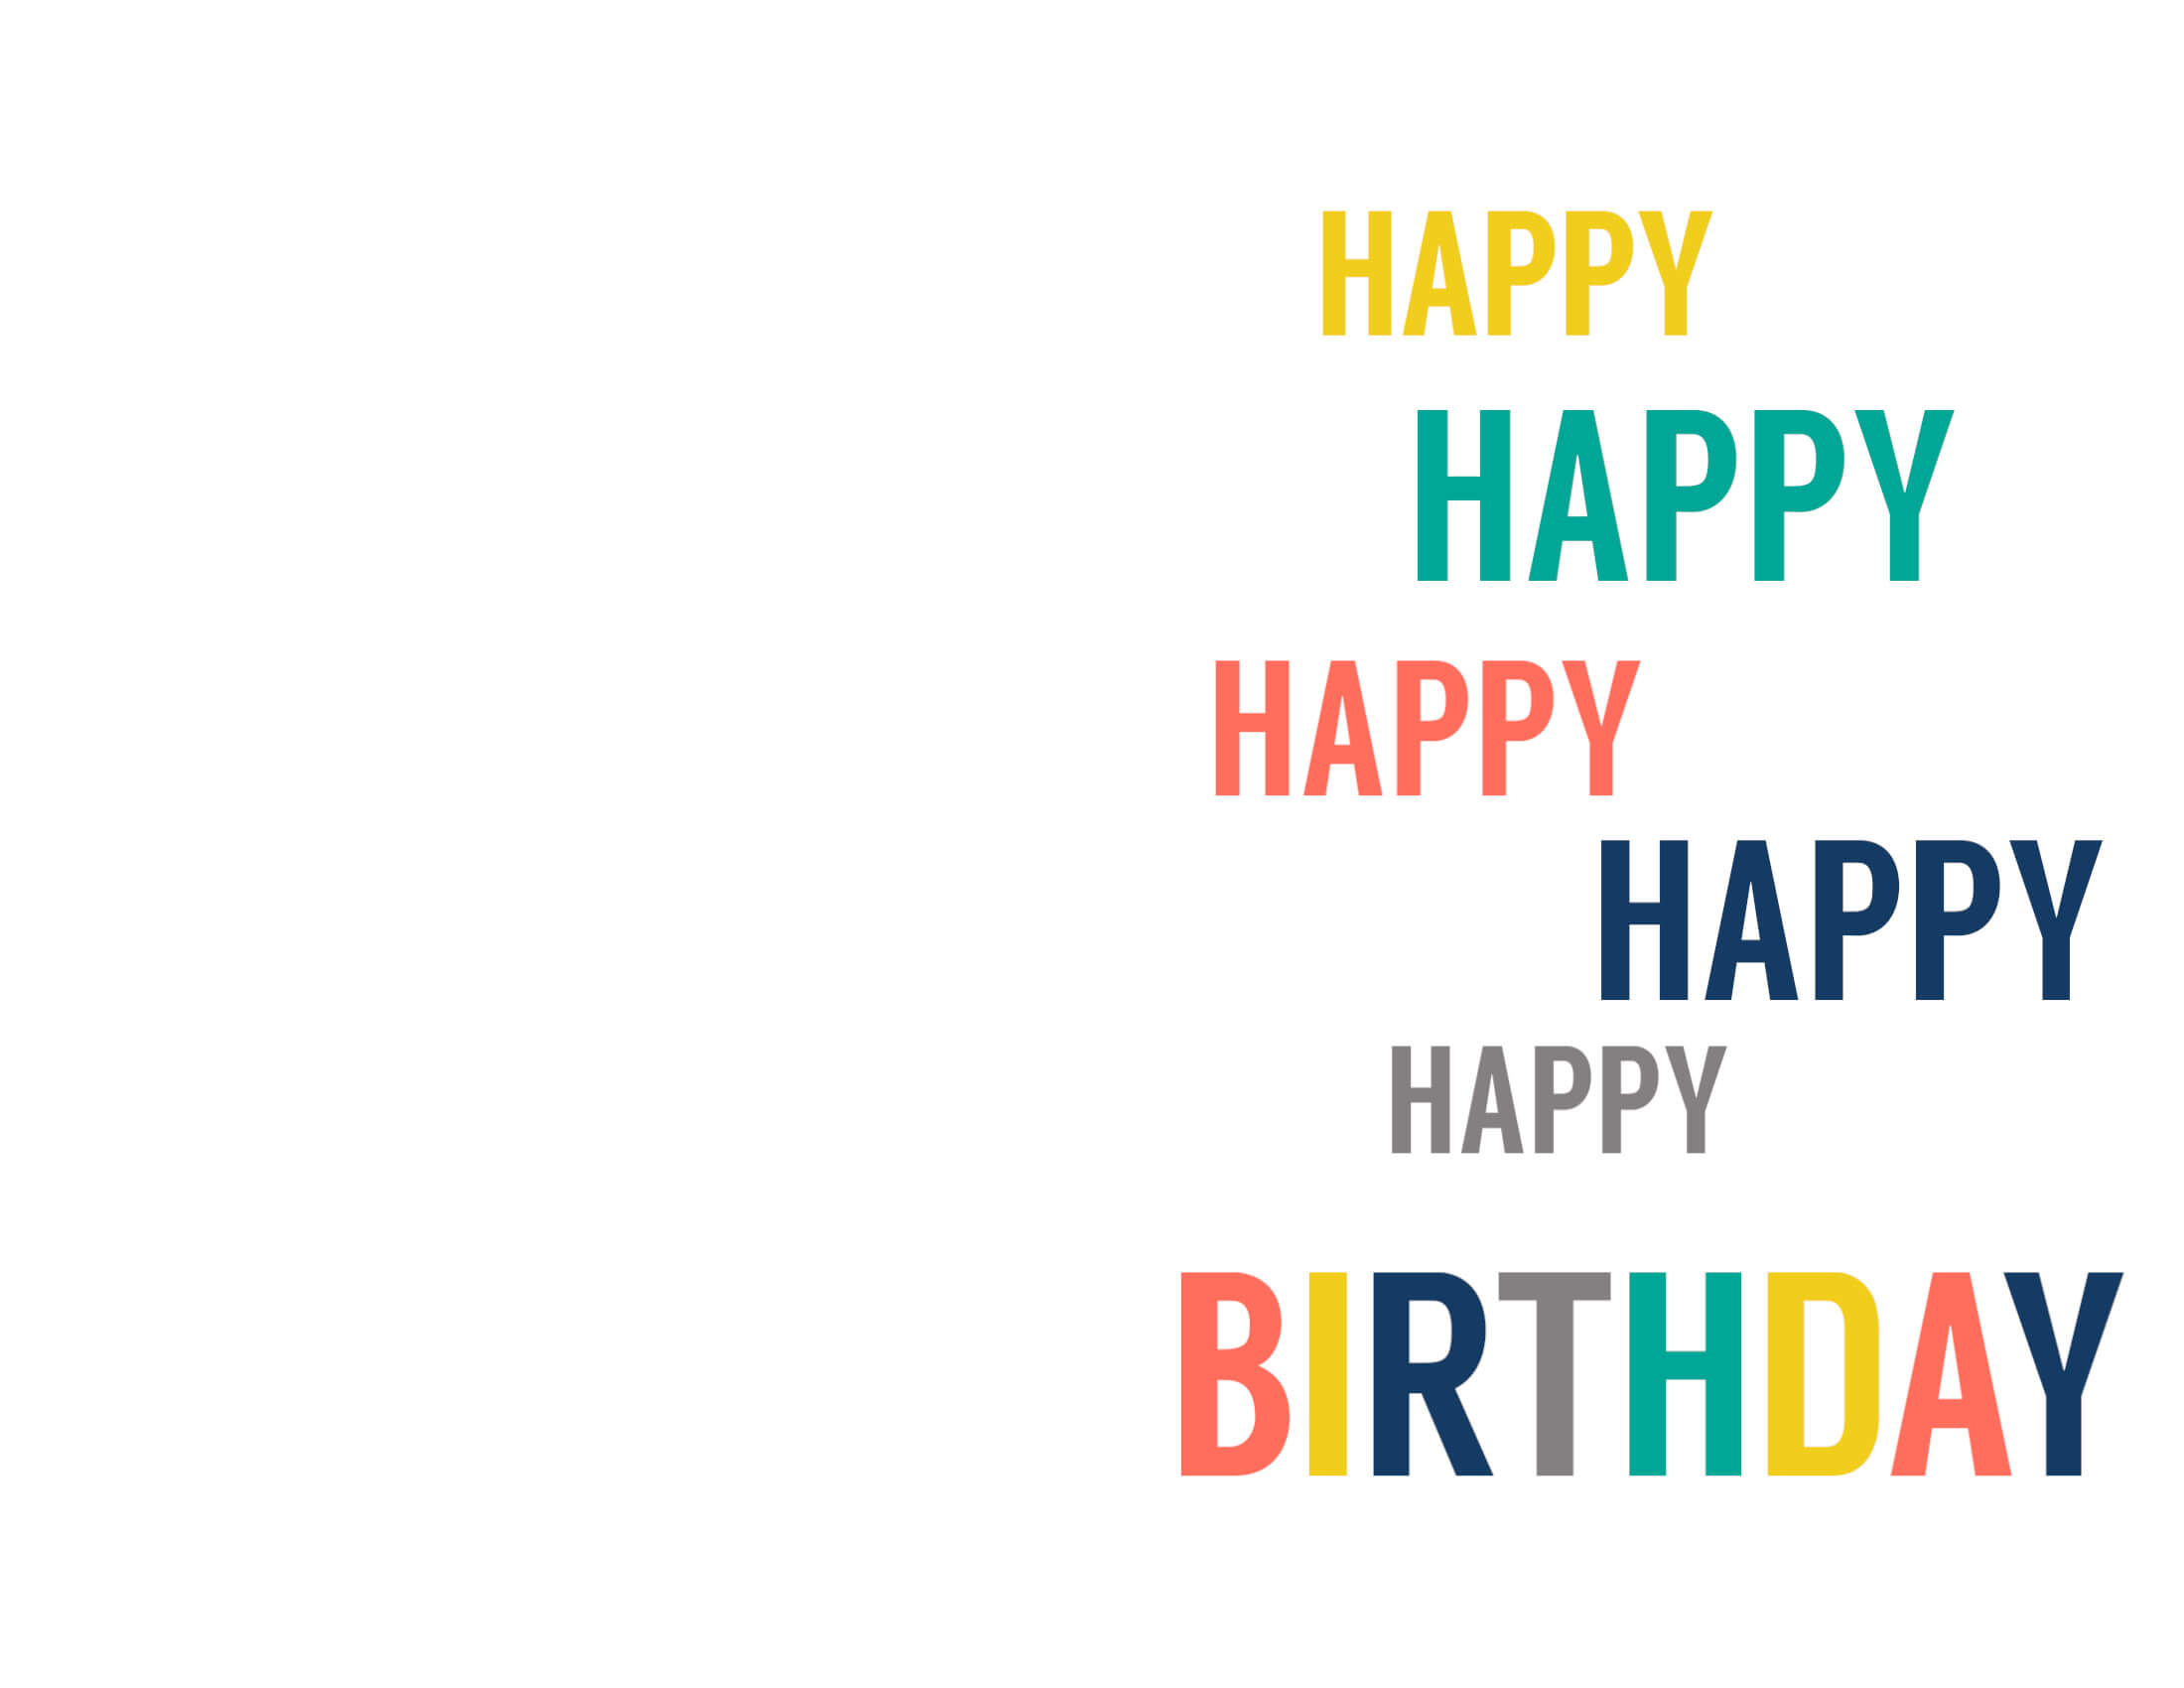 Free Printable Birthday Cards – Paper Trail Design With Template For Cards To Print Free